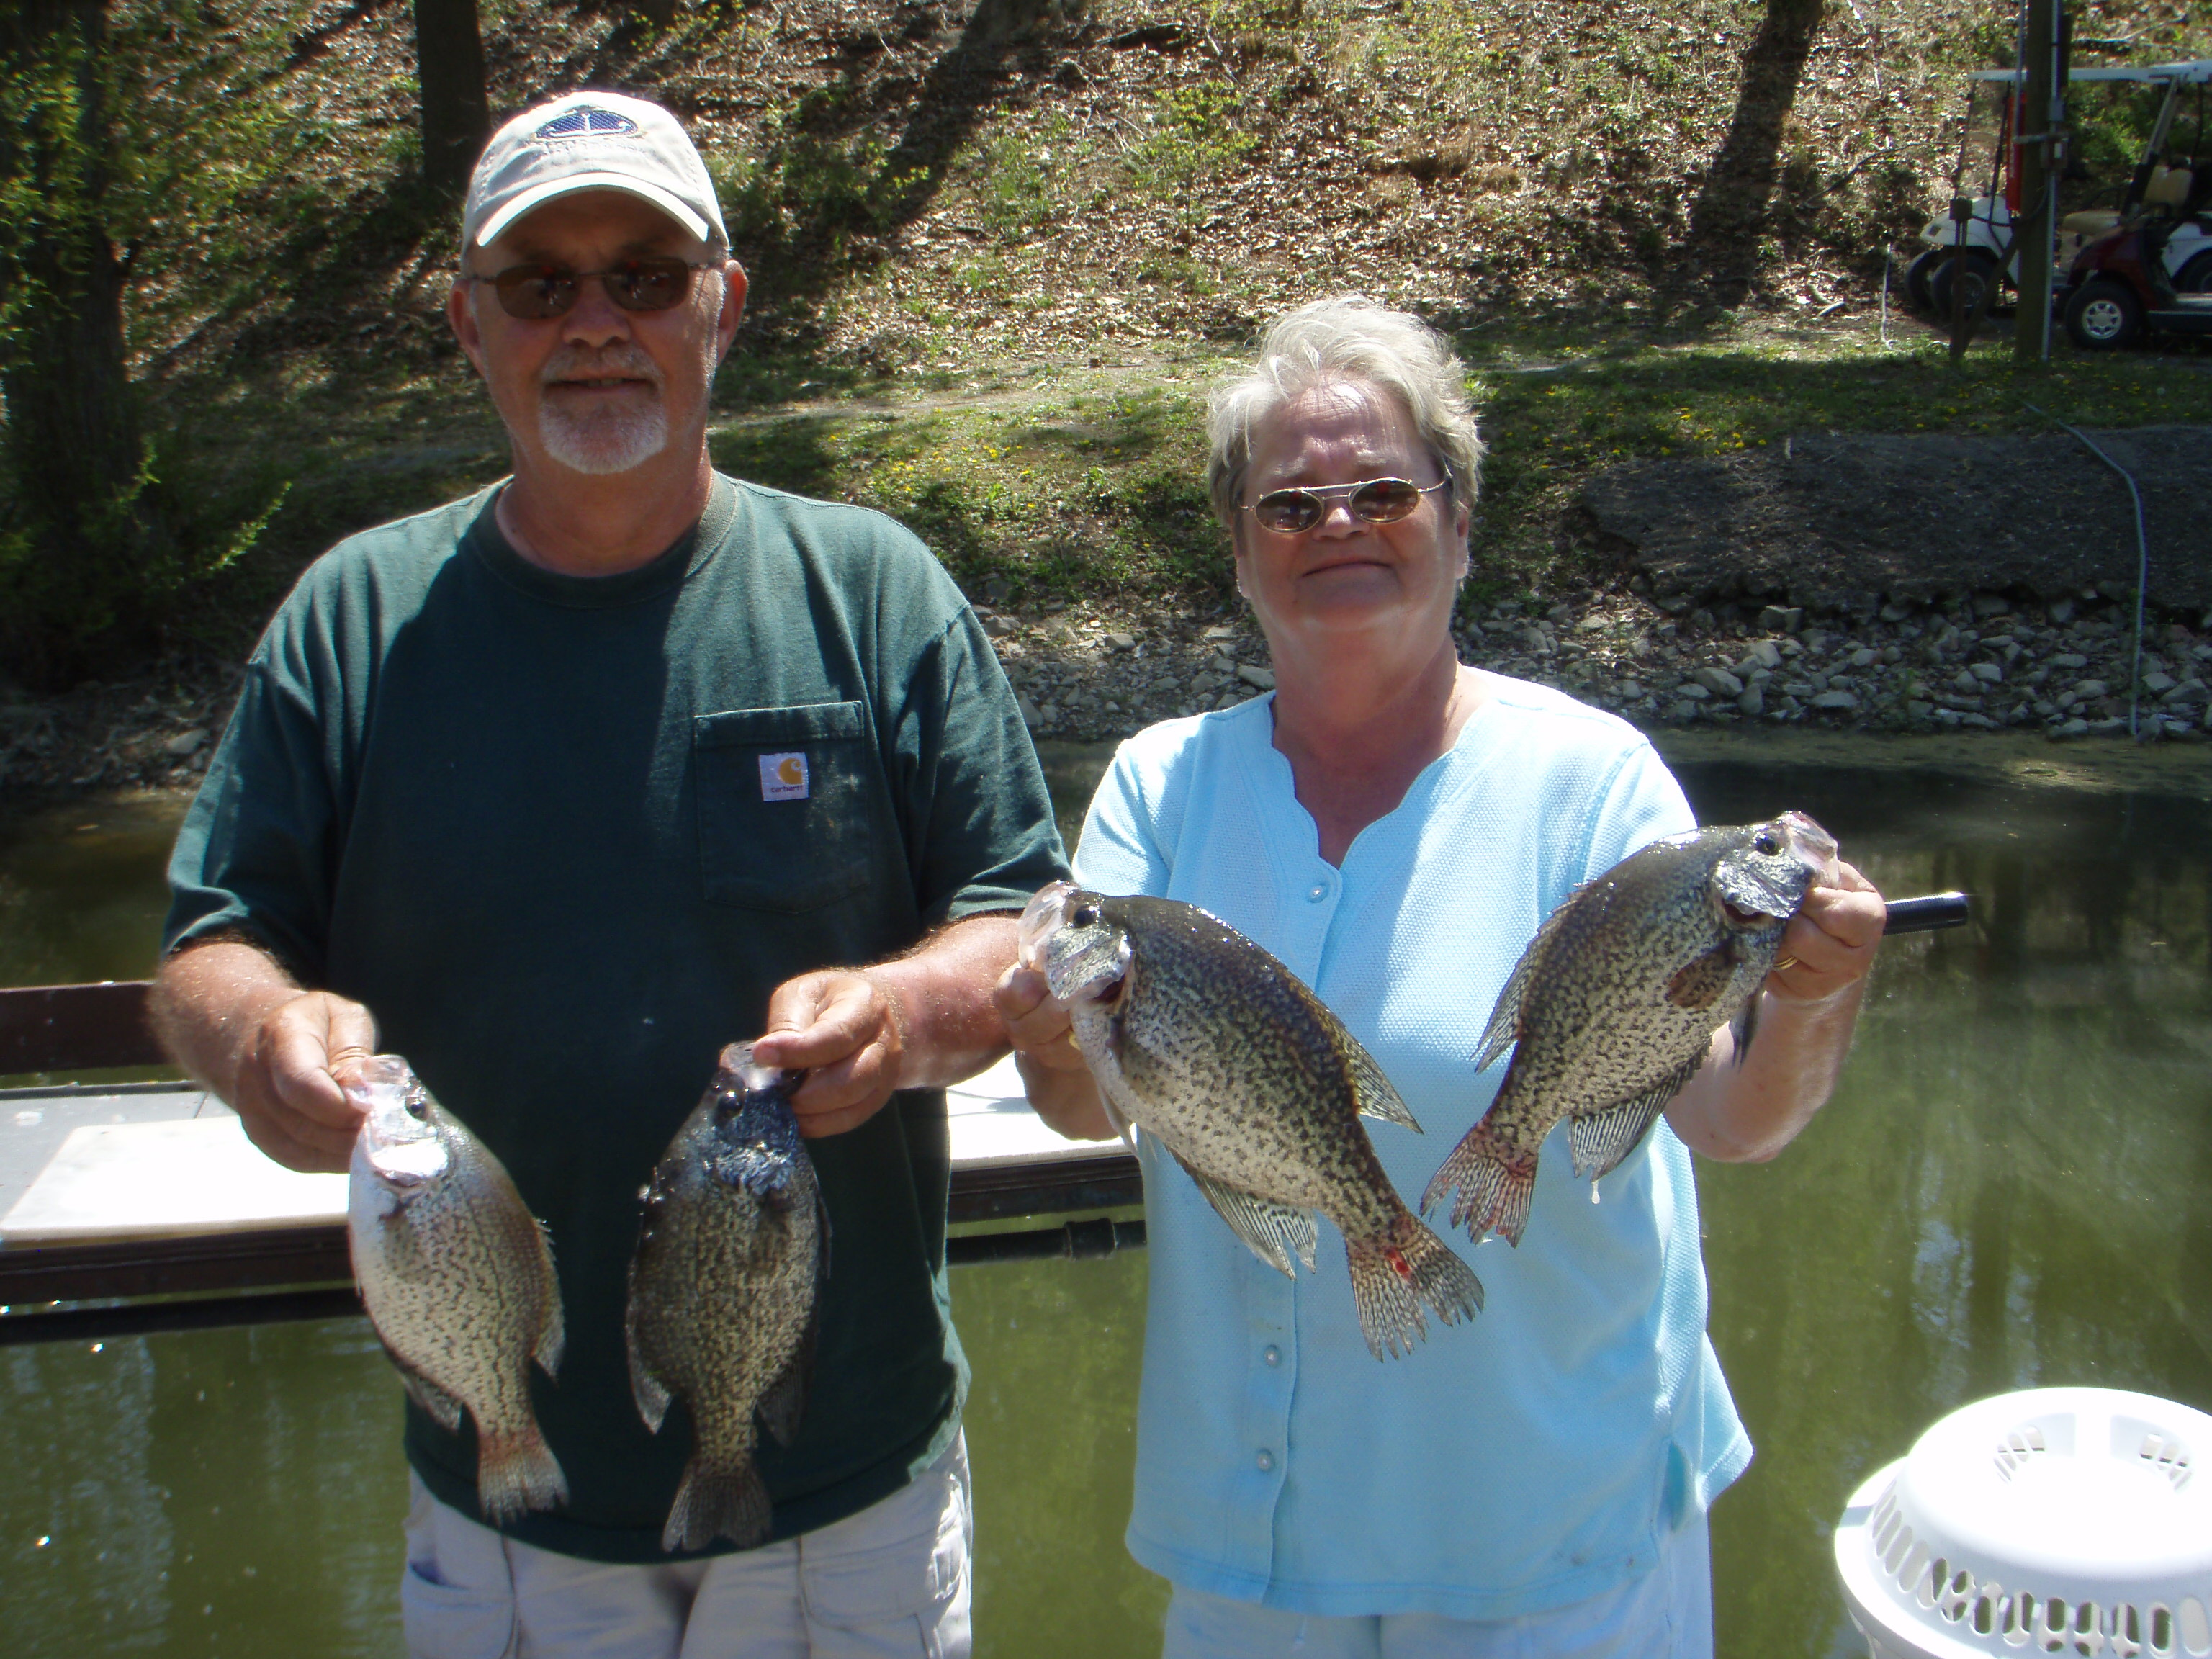 Holiday hills resort on lake barkley for Kentucky lake crappie fishing report